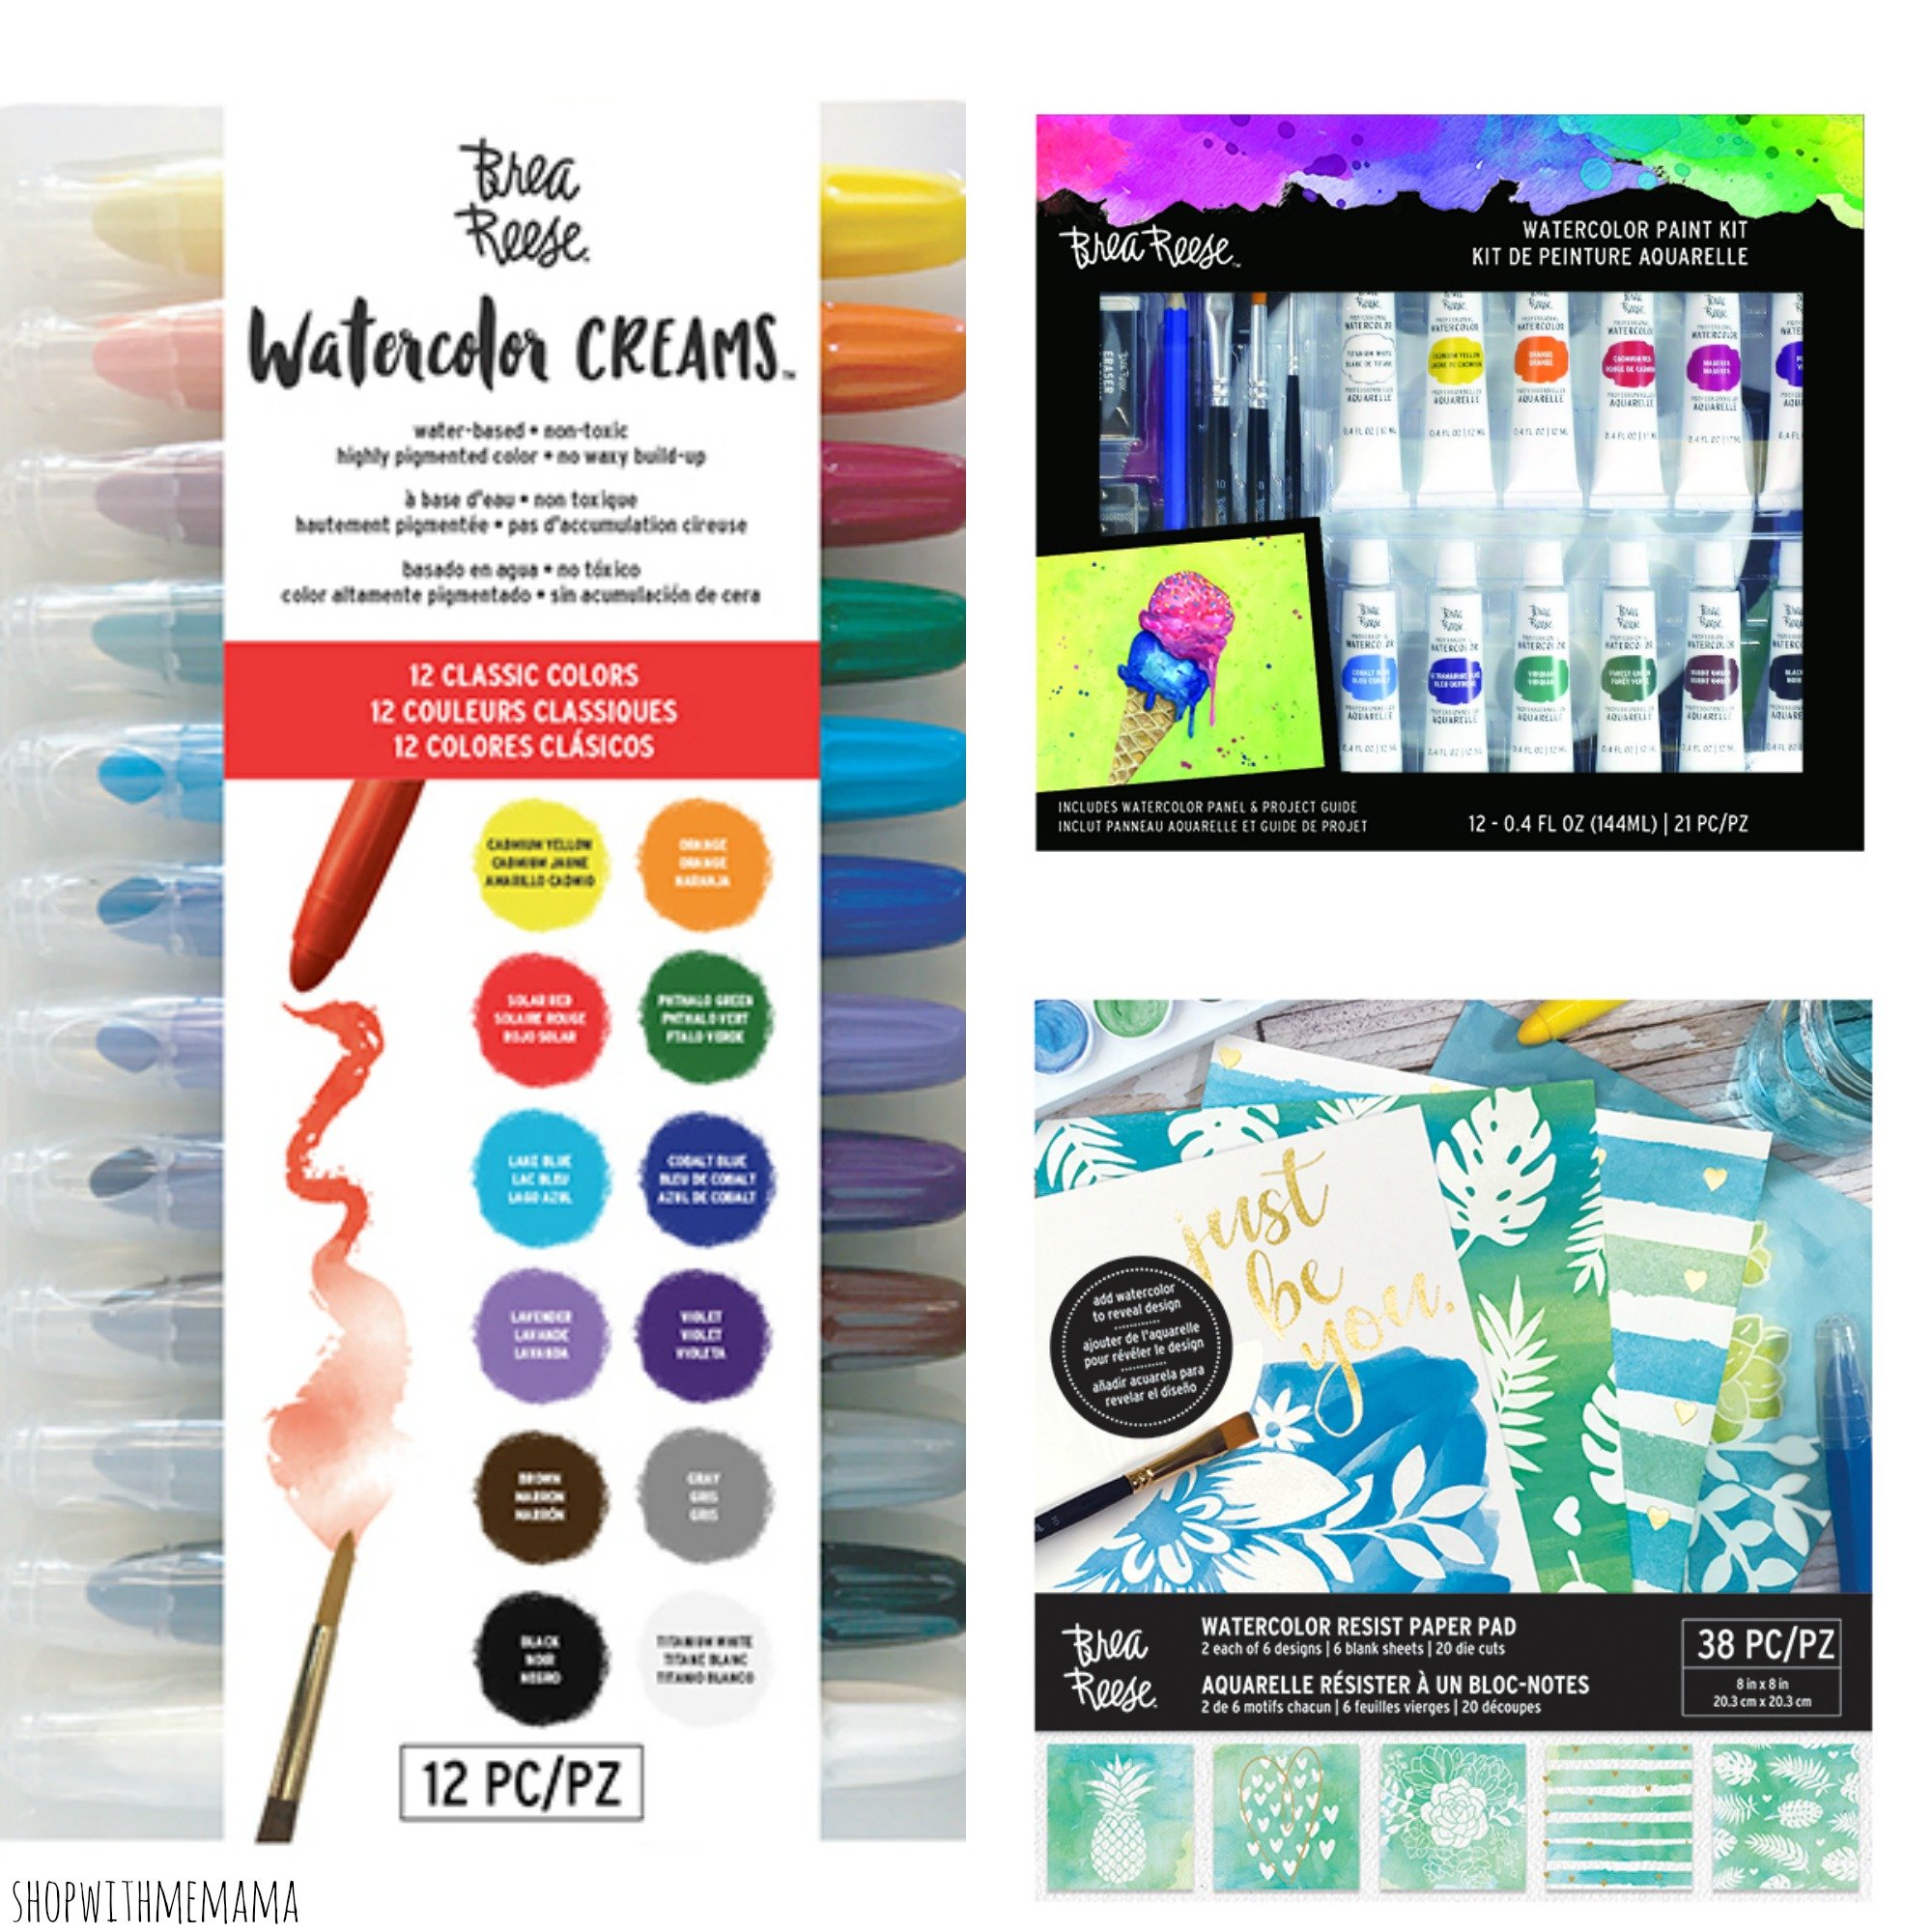 win brea reese art supplies